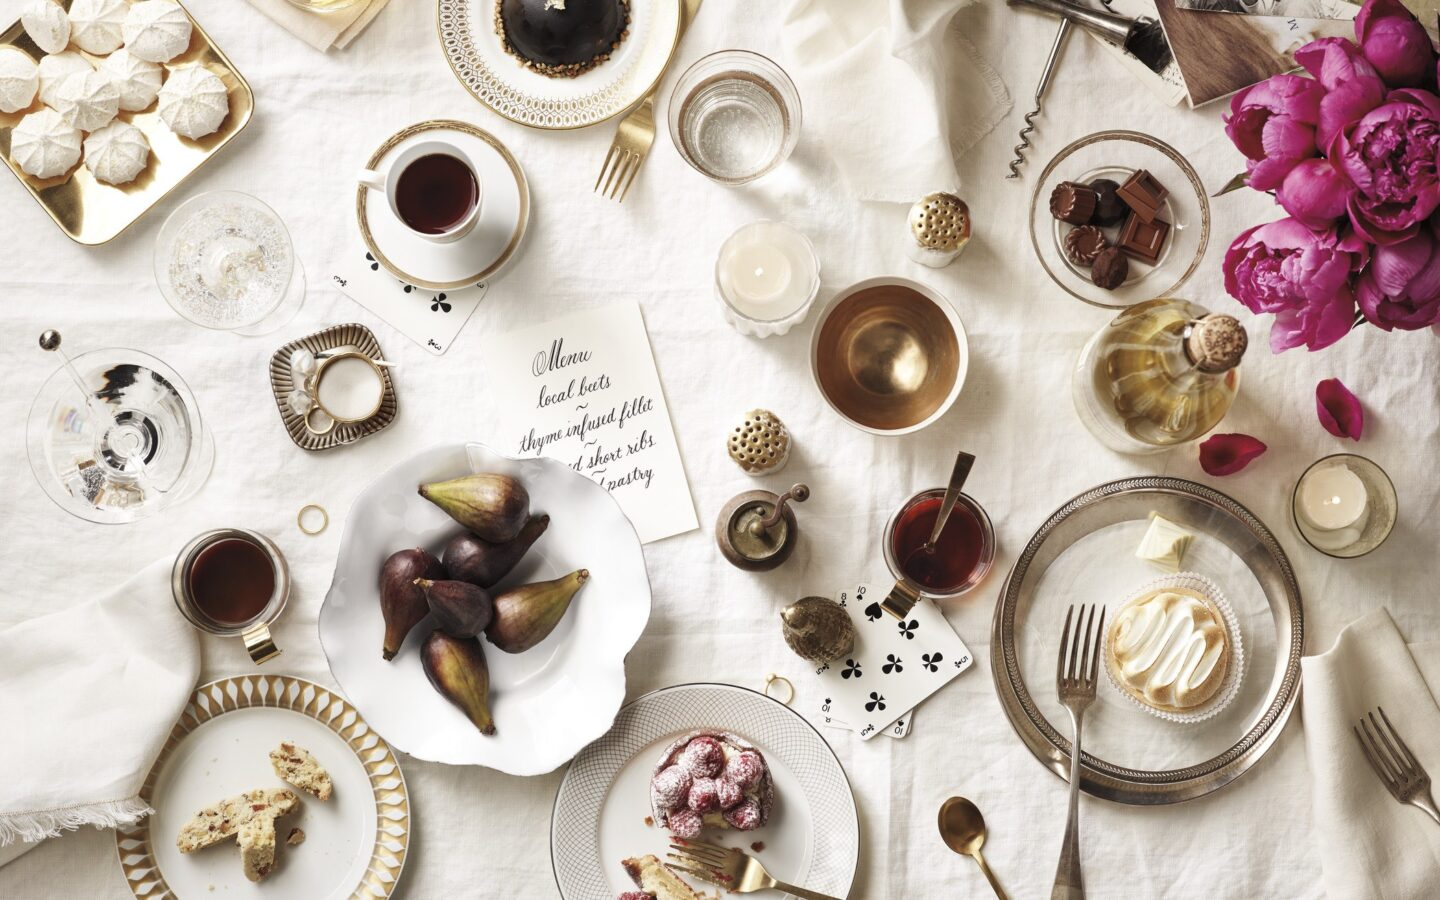 table with dinner party items